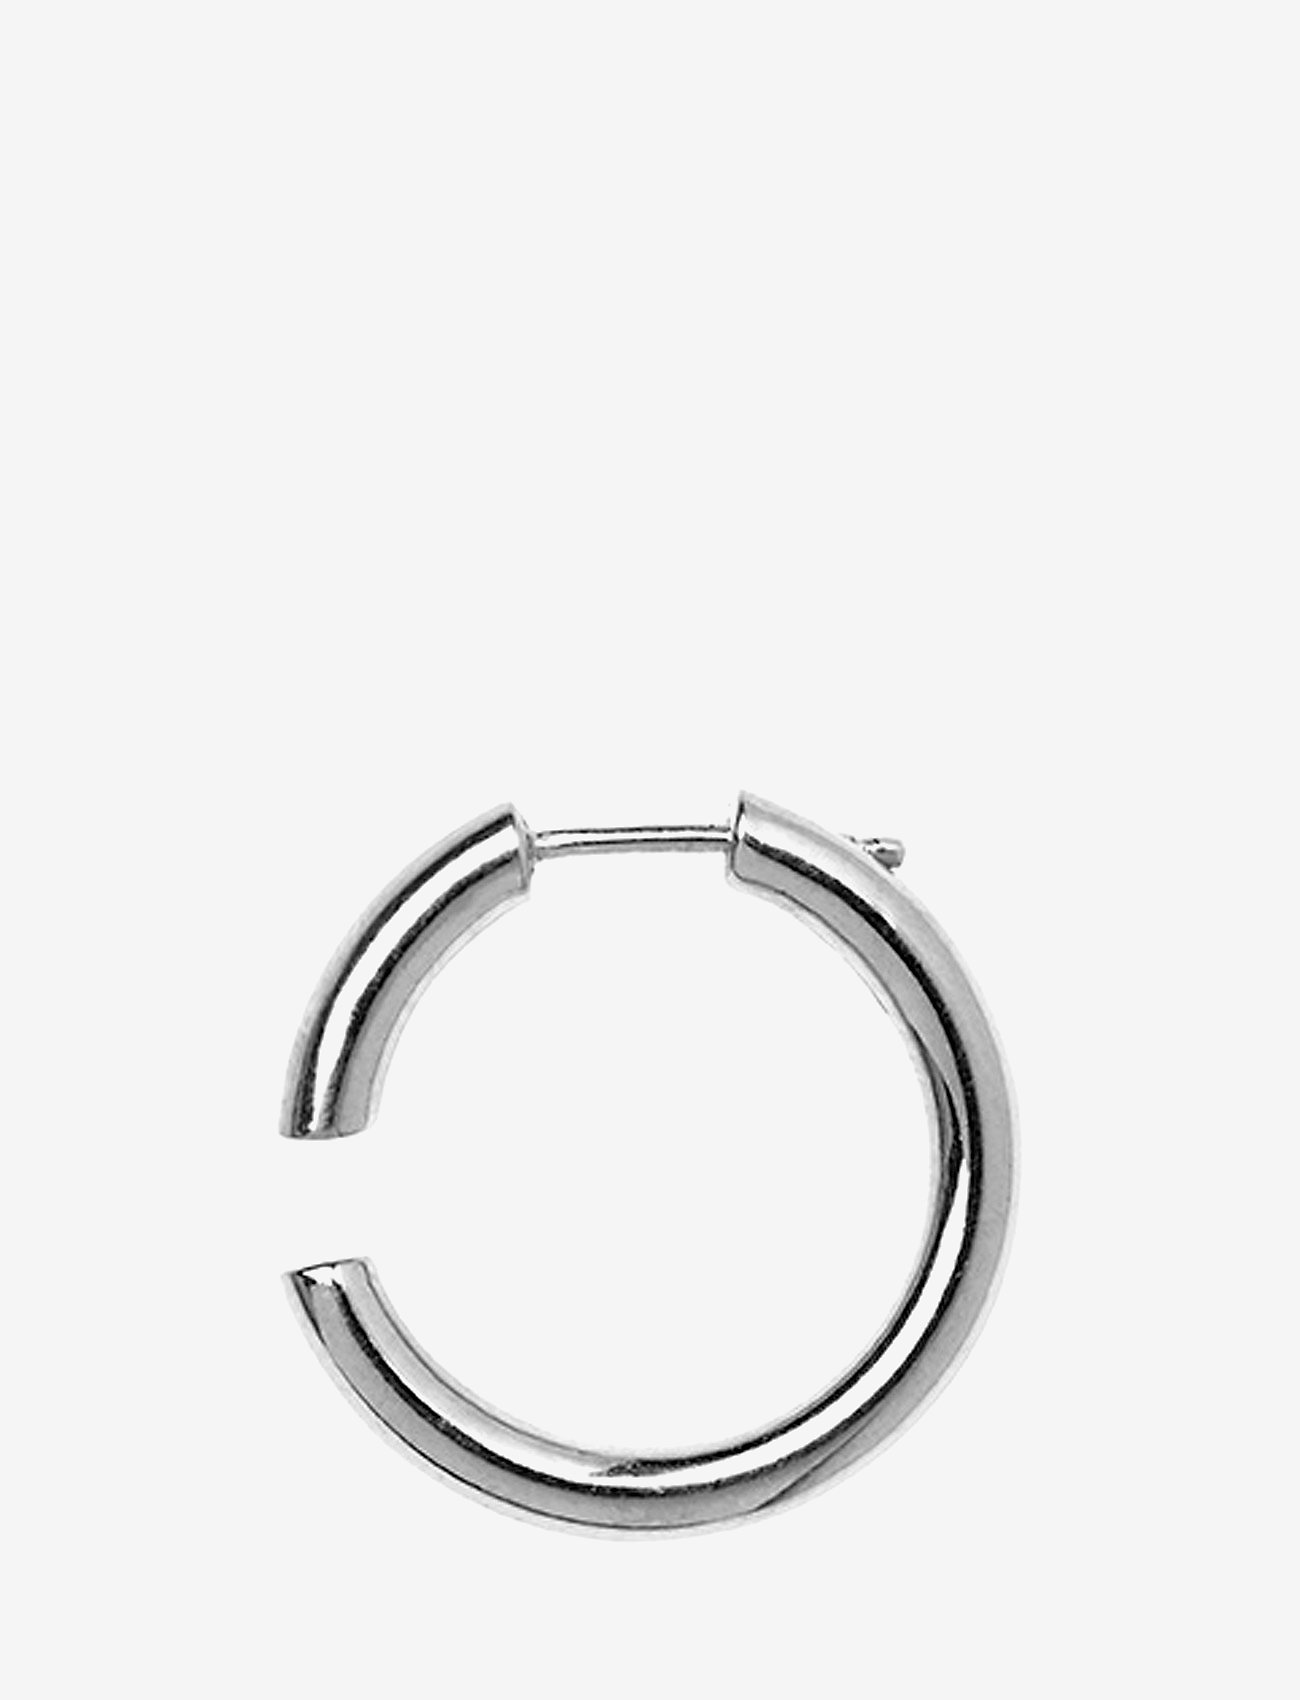 Maria Black - Disrupted 22 Earring - creoler - silver hp - 1